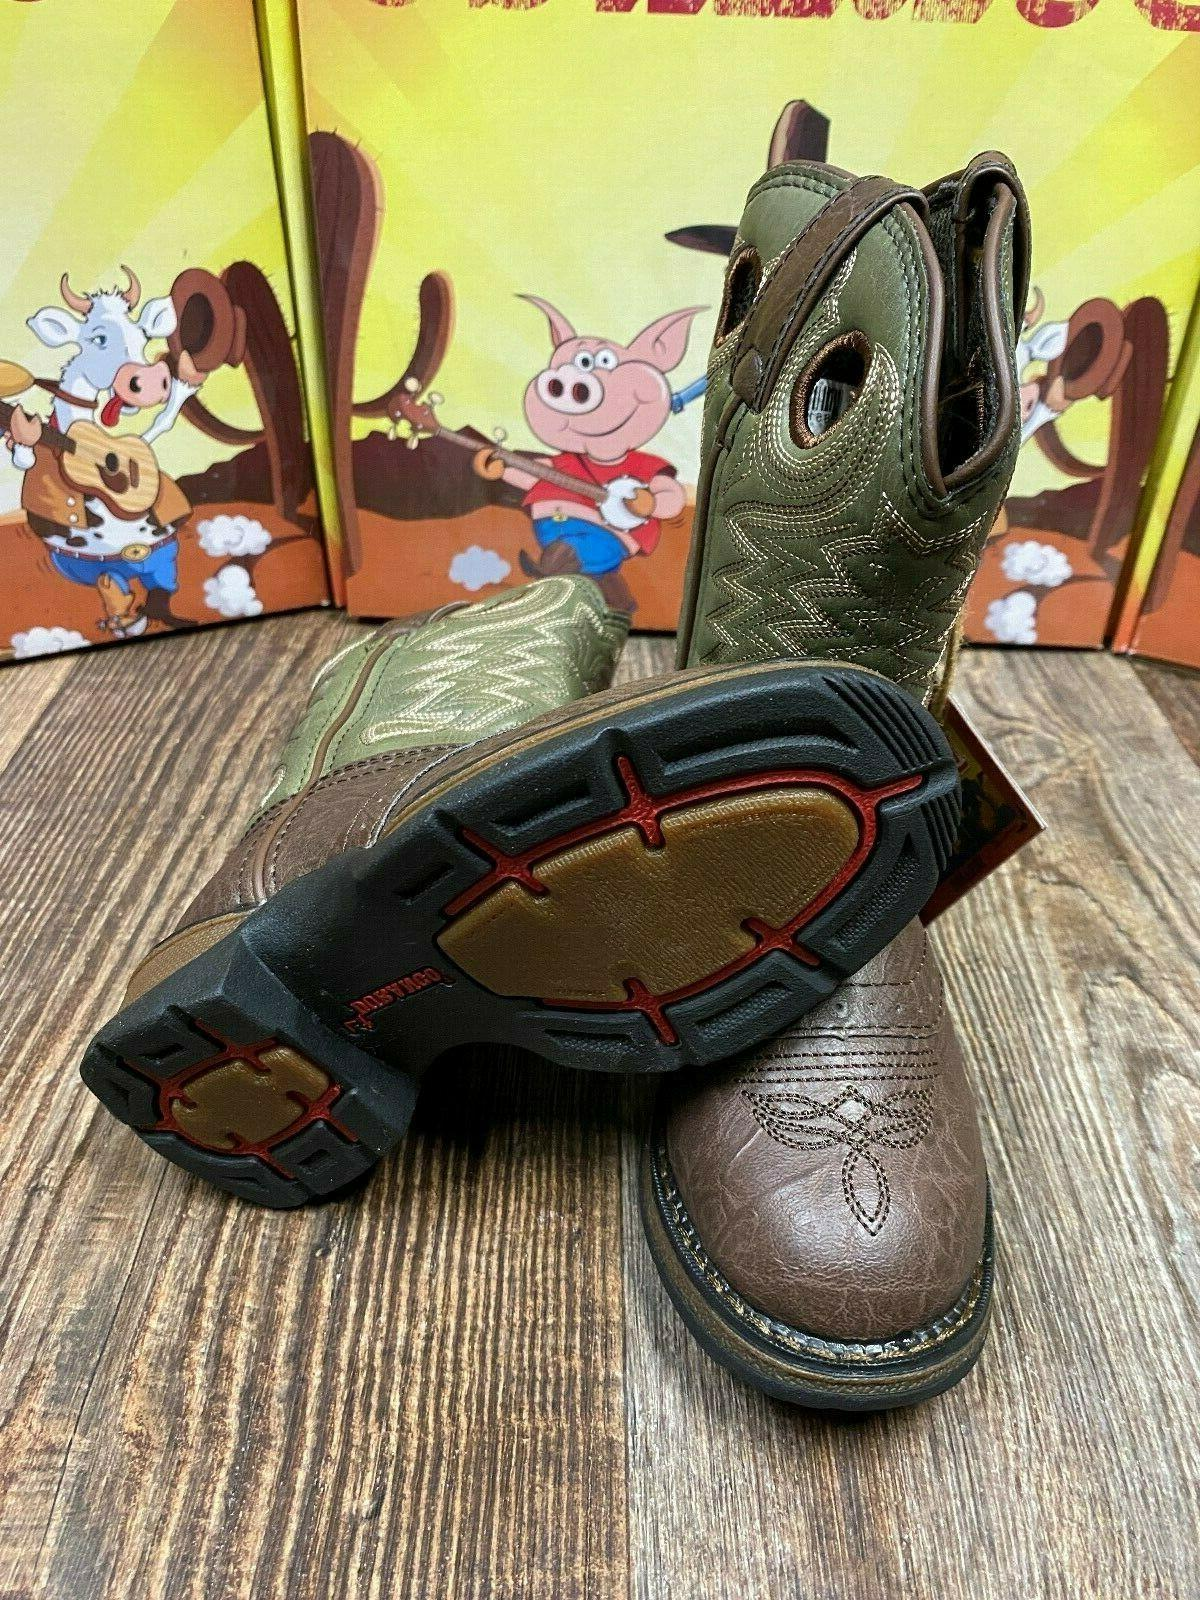 Kid's round boot by